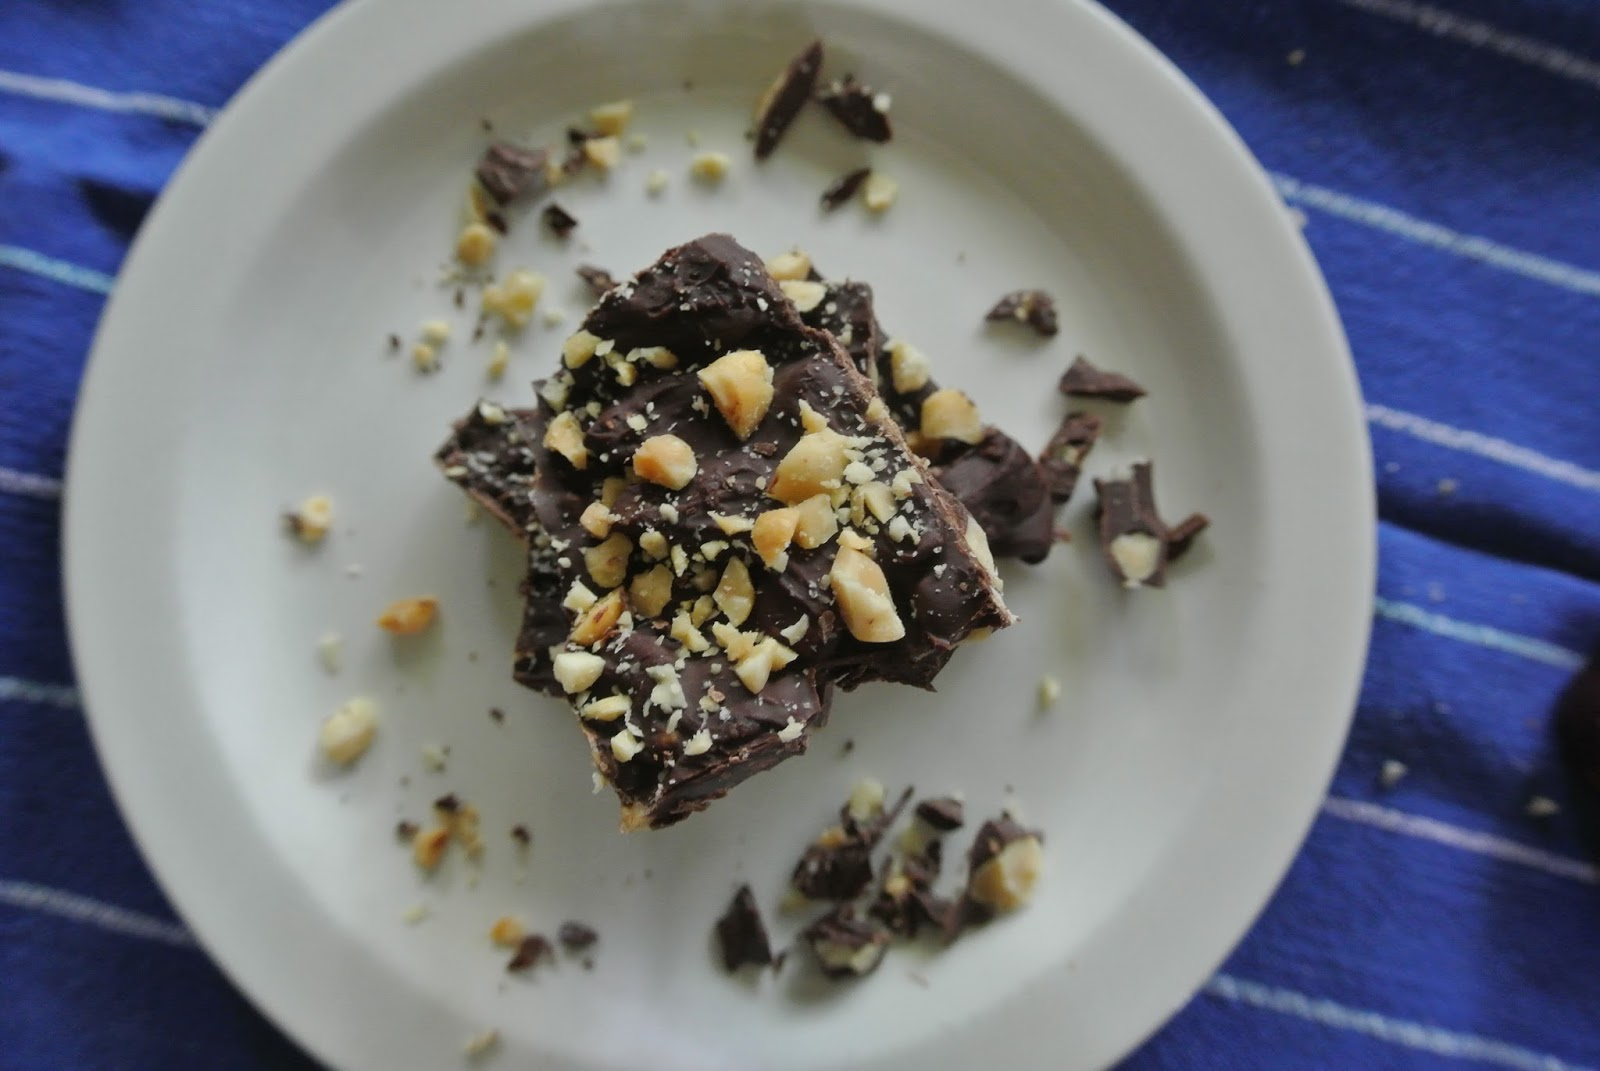 Chocolate Bark with Nuts and Dried Fruit - The Candid RD